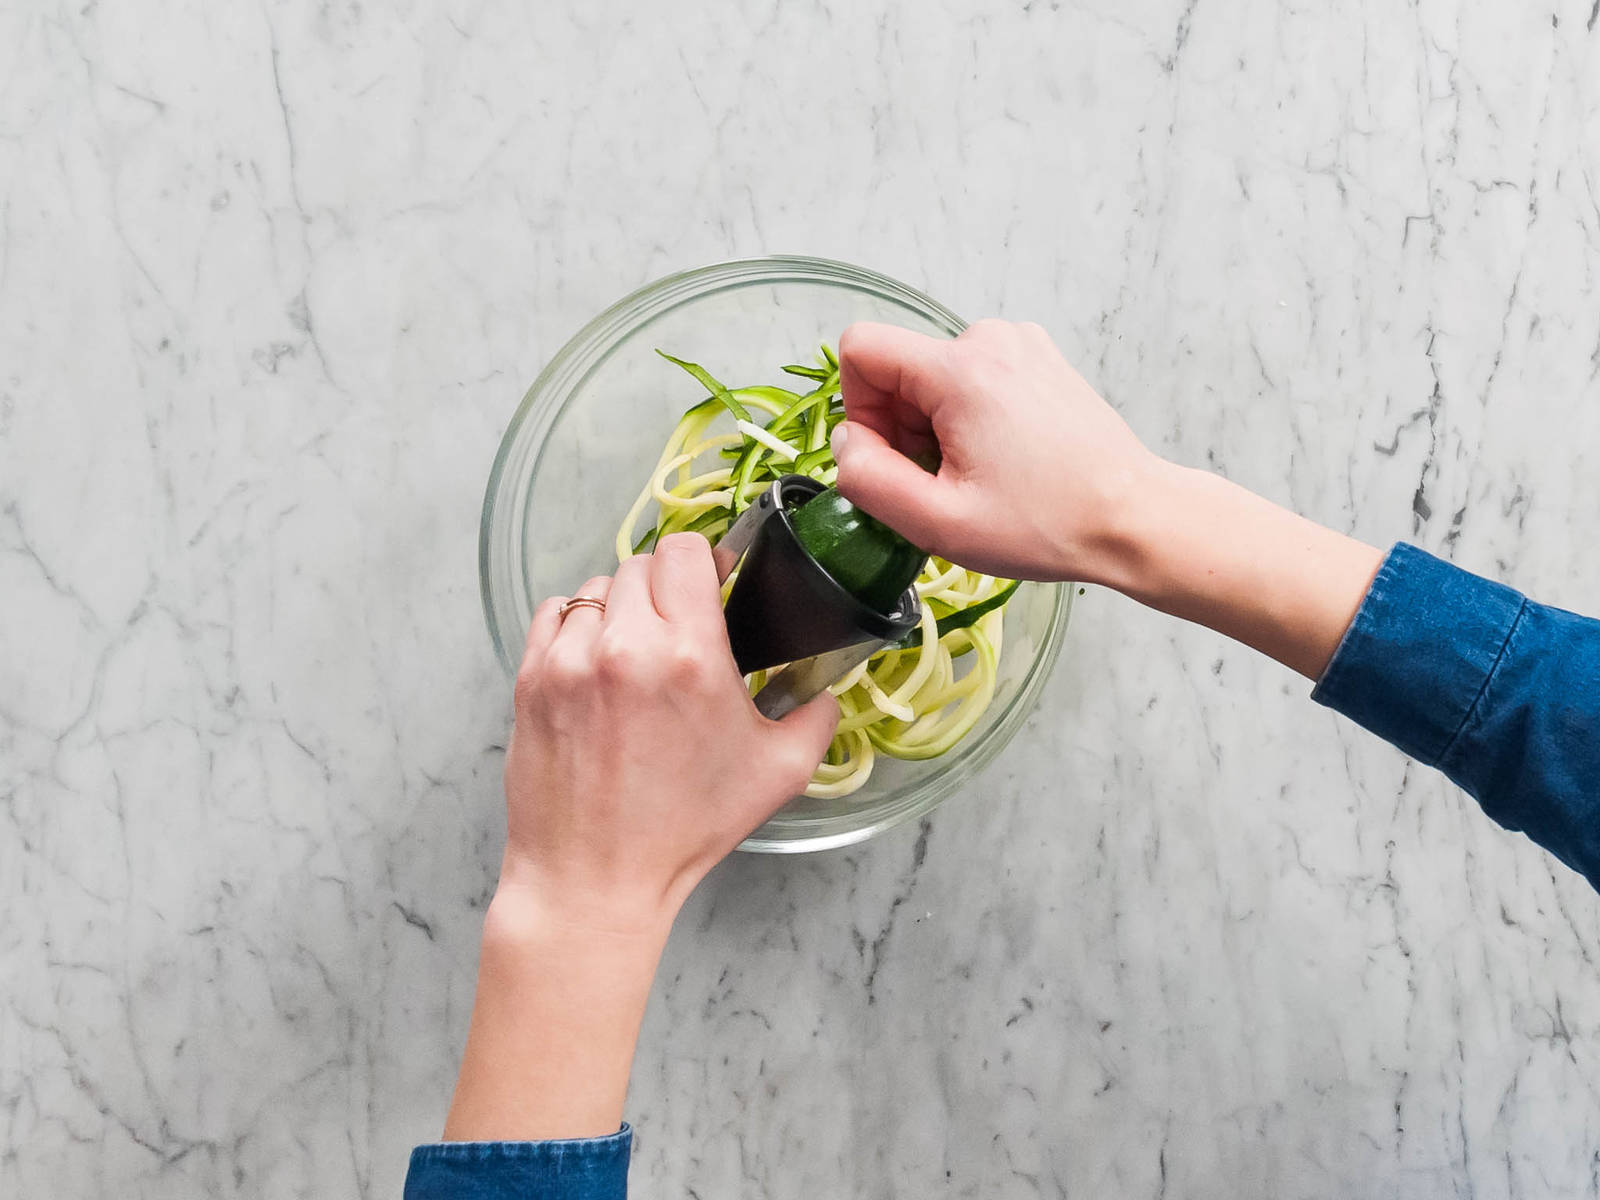 Using a vegetable spiralizer or peeler, cut whole zucchini into spaghetti-like noodles or ribbons.